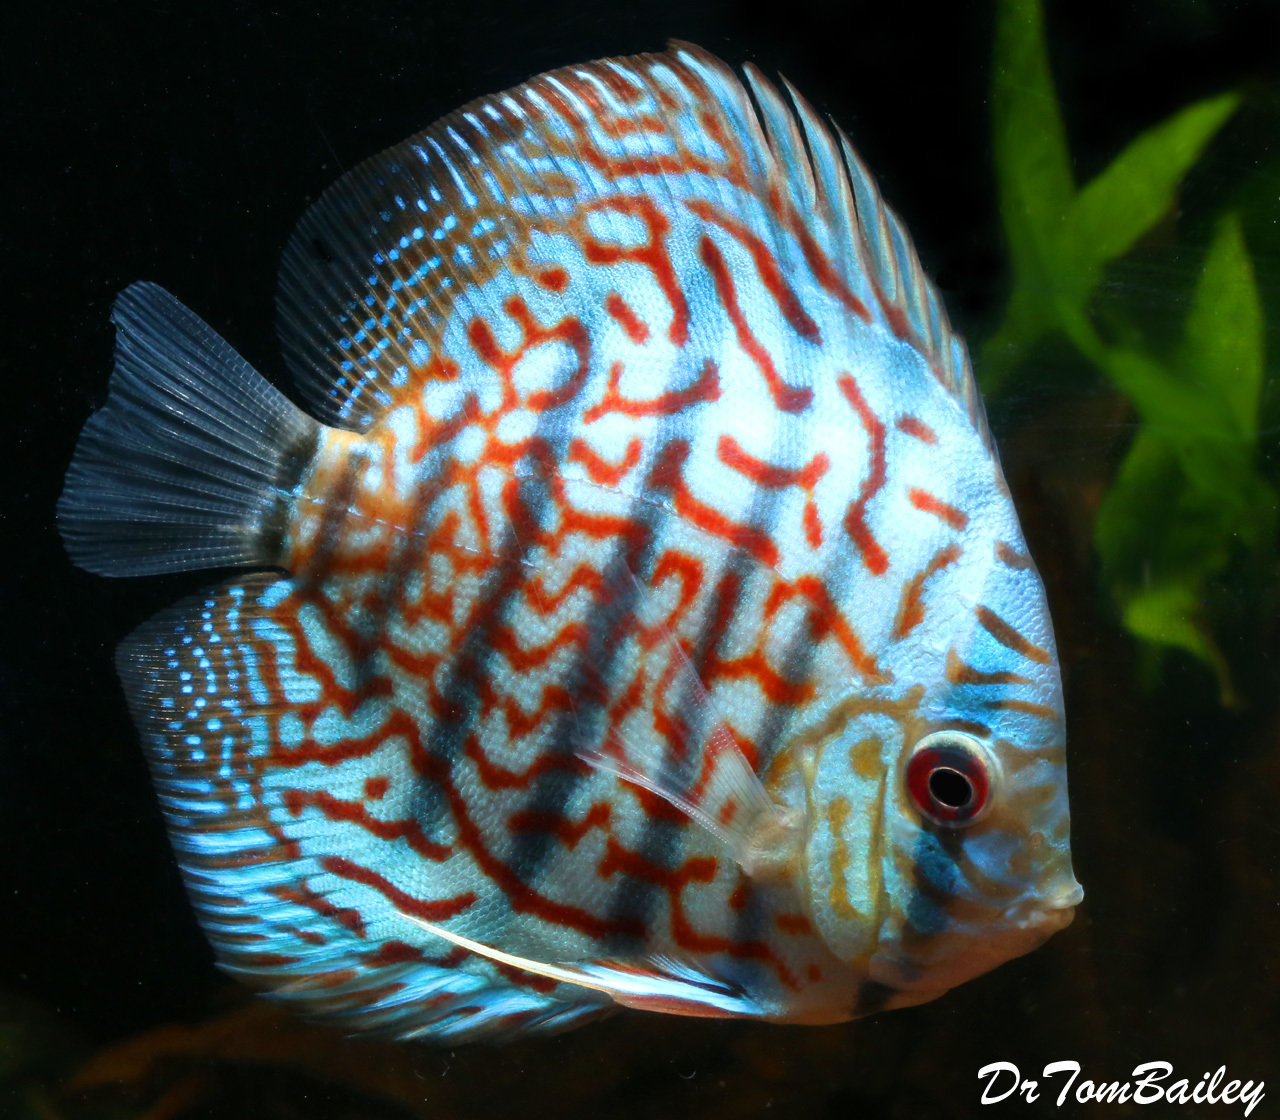 "Premium Red Turquoise Discus, 3.5"" to 4"" long"